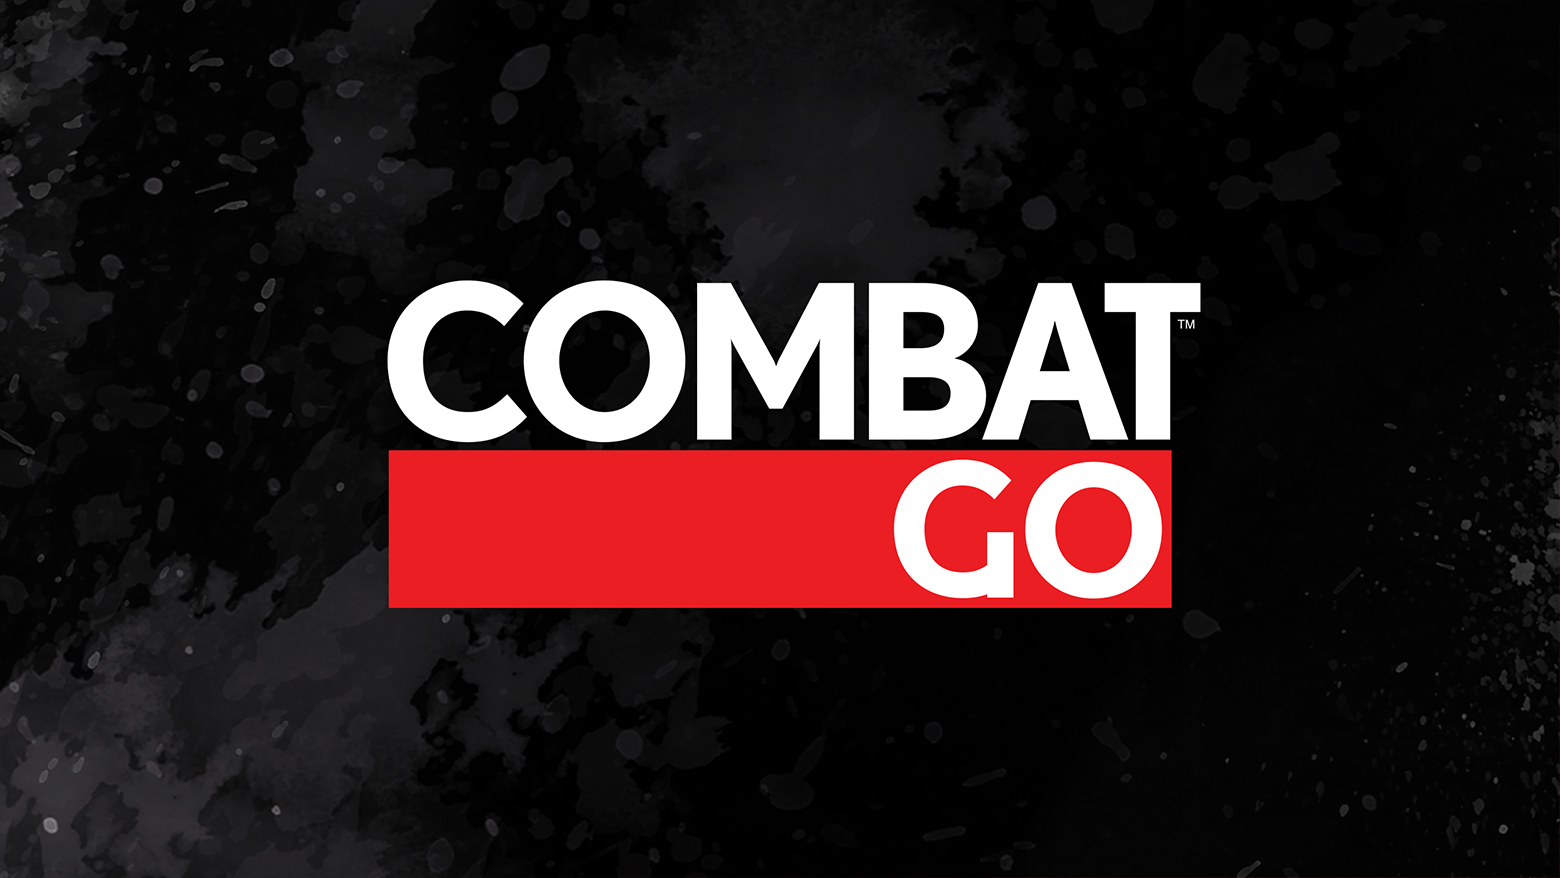 Watch The Combatgo Channel Ch 217 On Pluto Tv